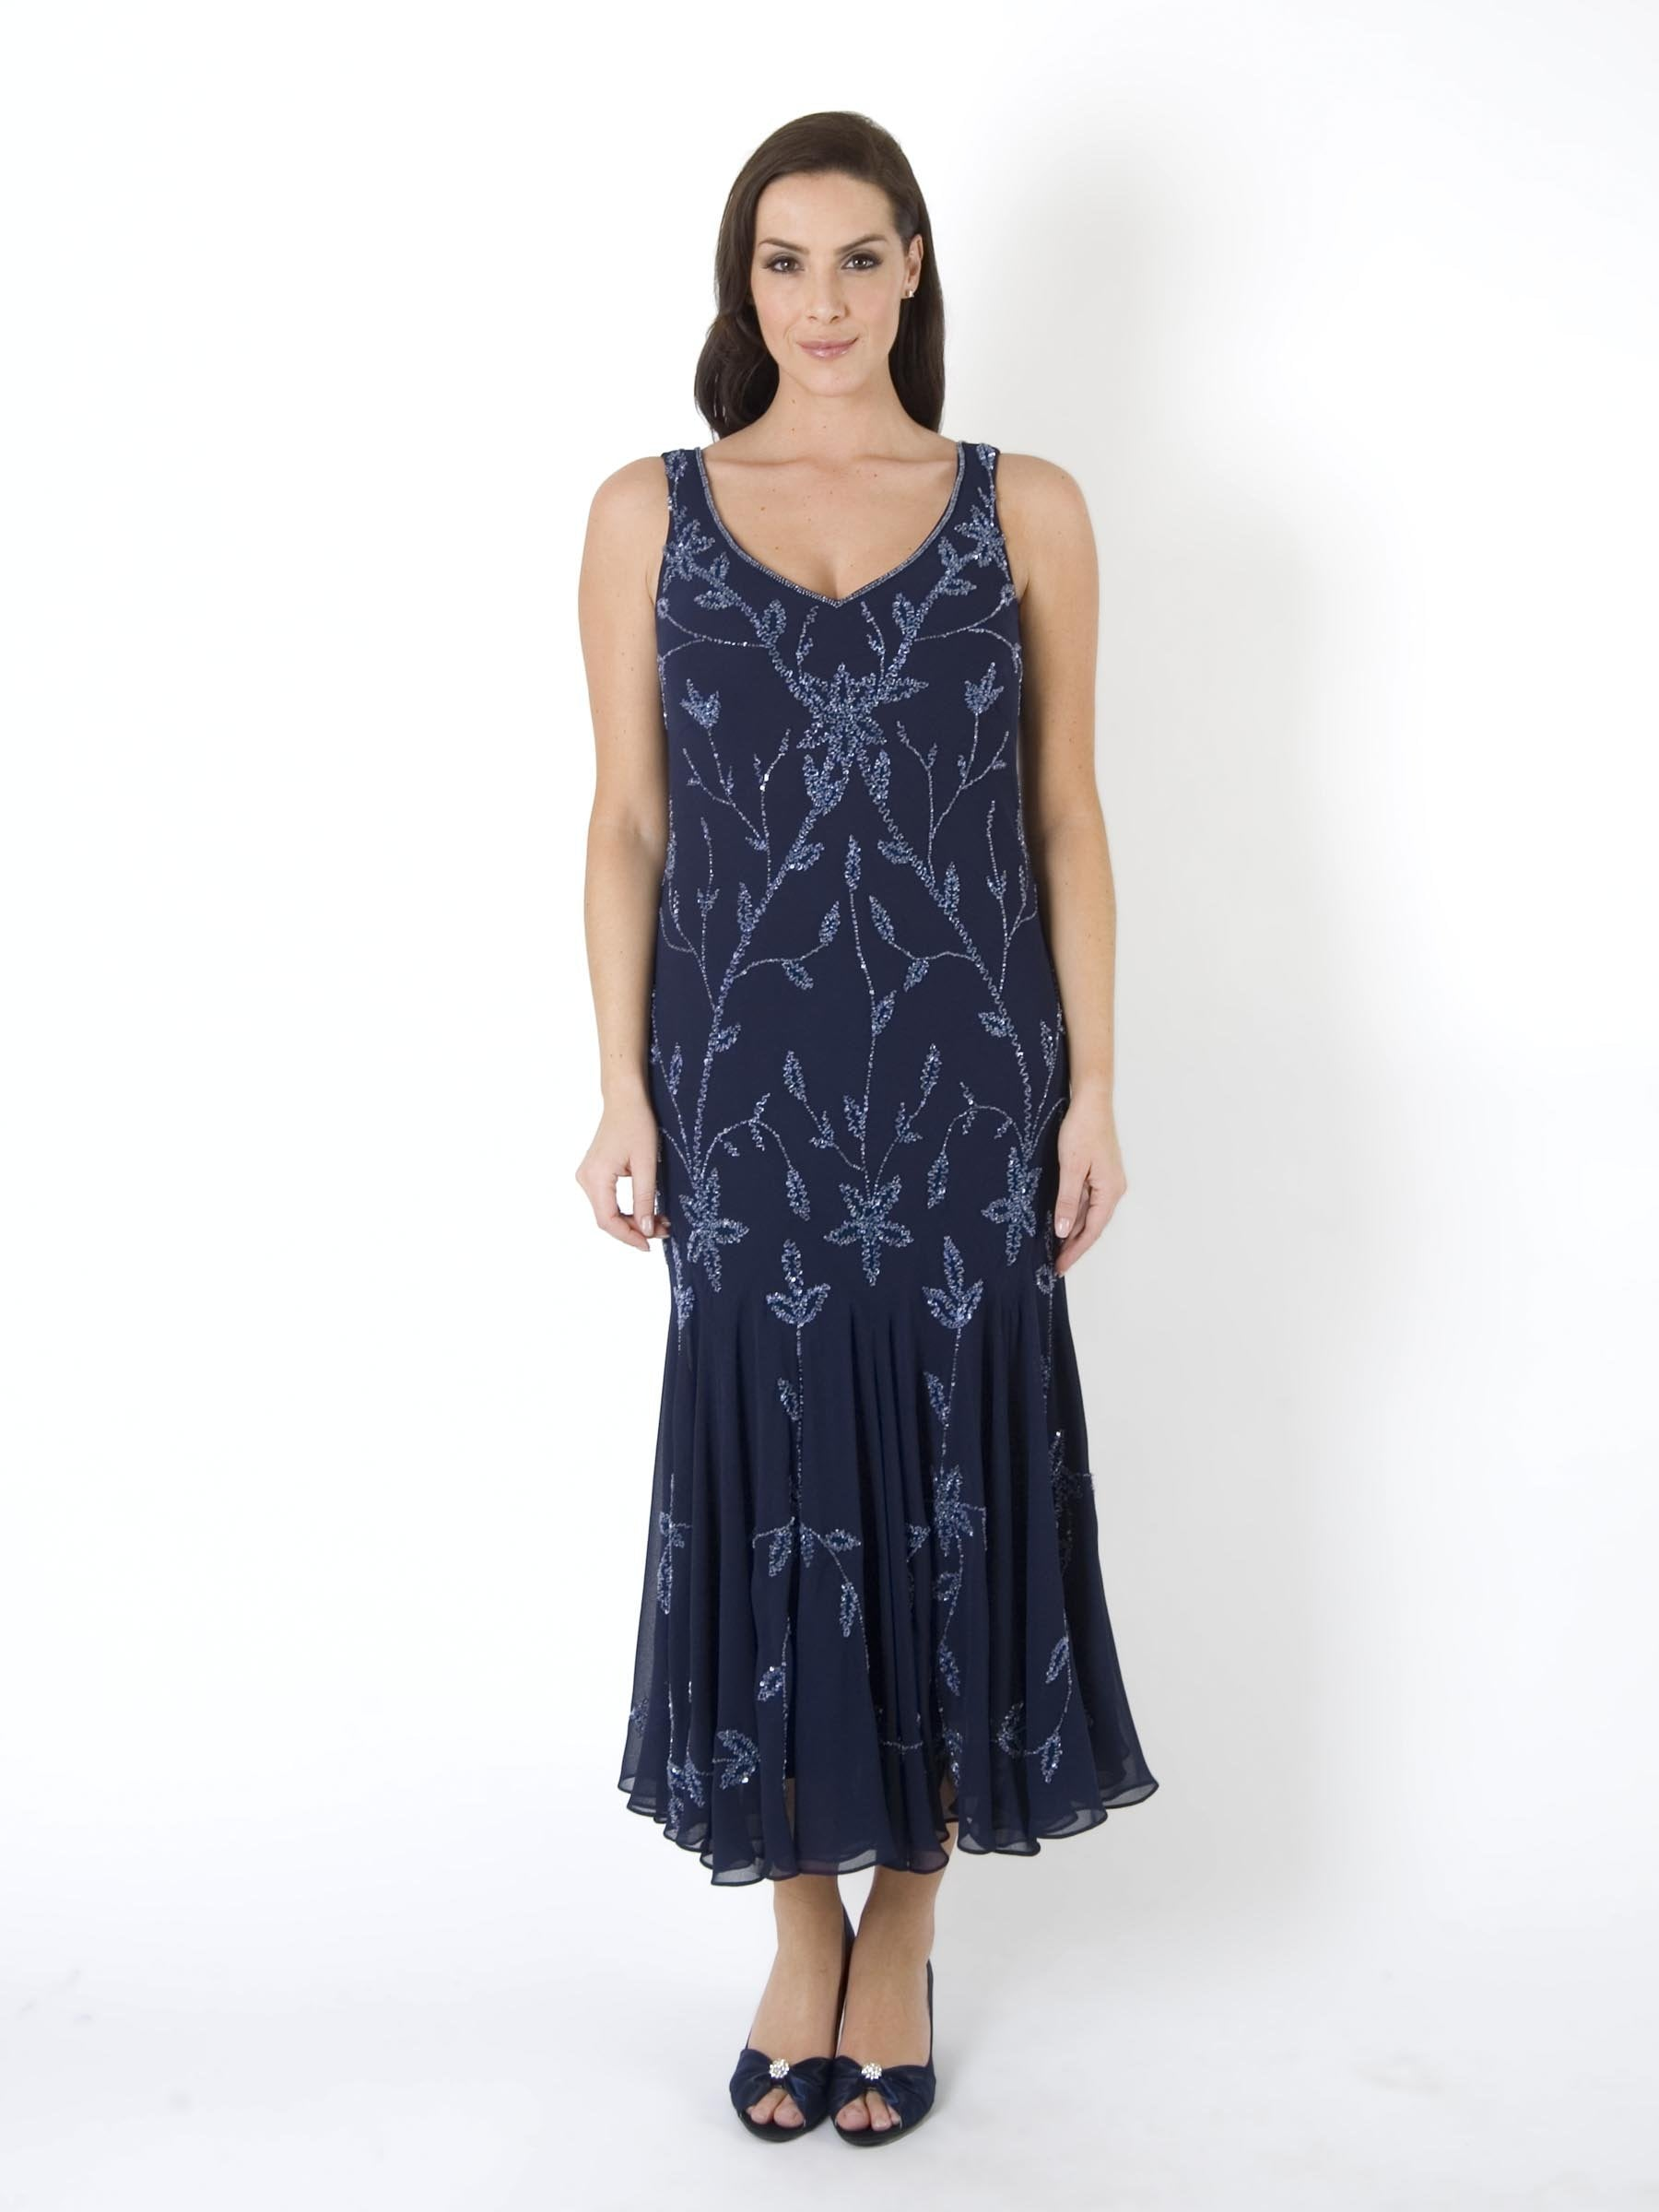 Women's Navy/Lilac Allover Beaded Dress